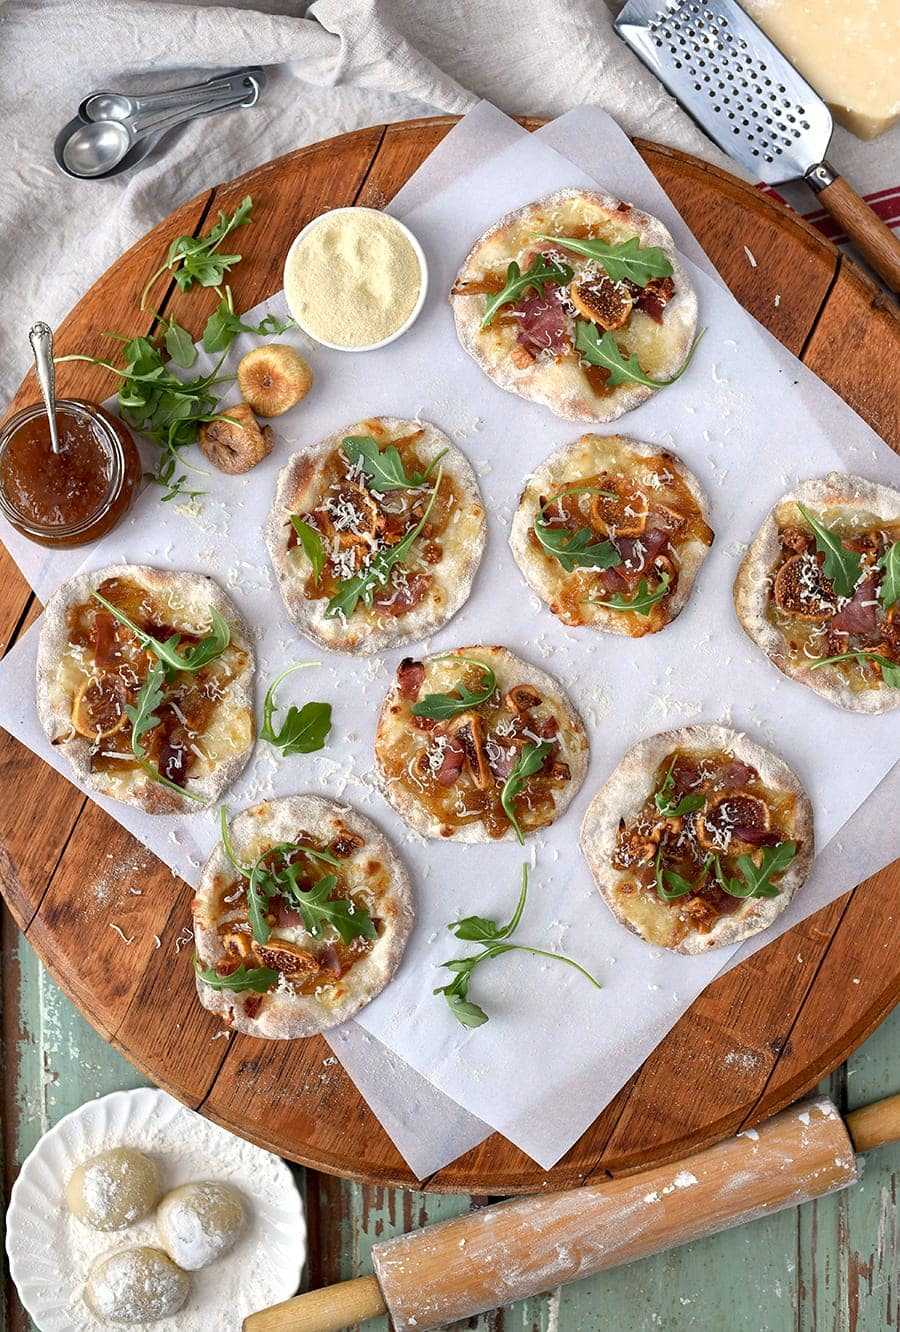 These delicious mini fig pizzas are a casual appetizer with tons of foodie appeal! Dried figs make this pizza recipe a winter staple. Prosciutto, caramelized onions and arugula top fresh mozzarella for a sweet and savory pie that's hard to resist! #pizza #appetizers #gameday #prosciutto #caramelizedonions